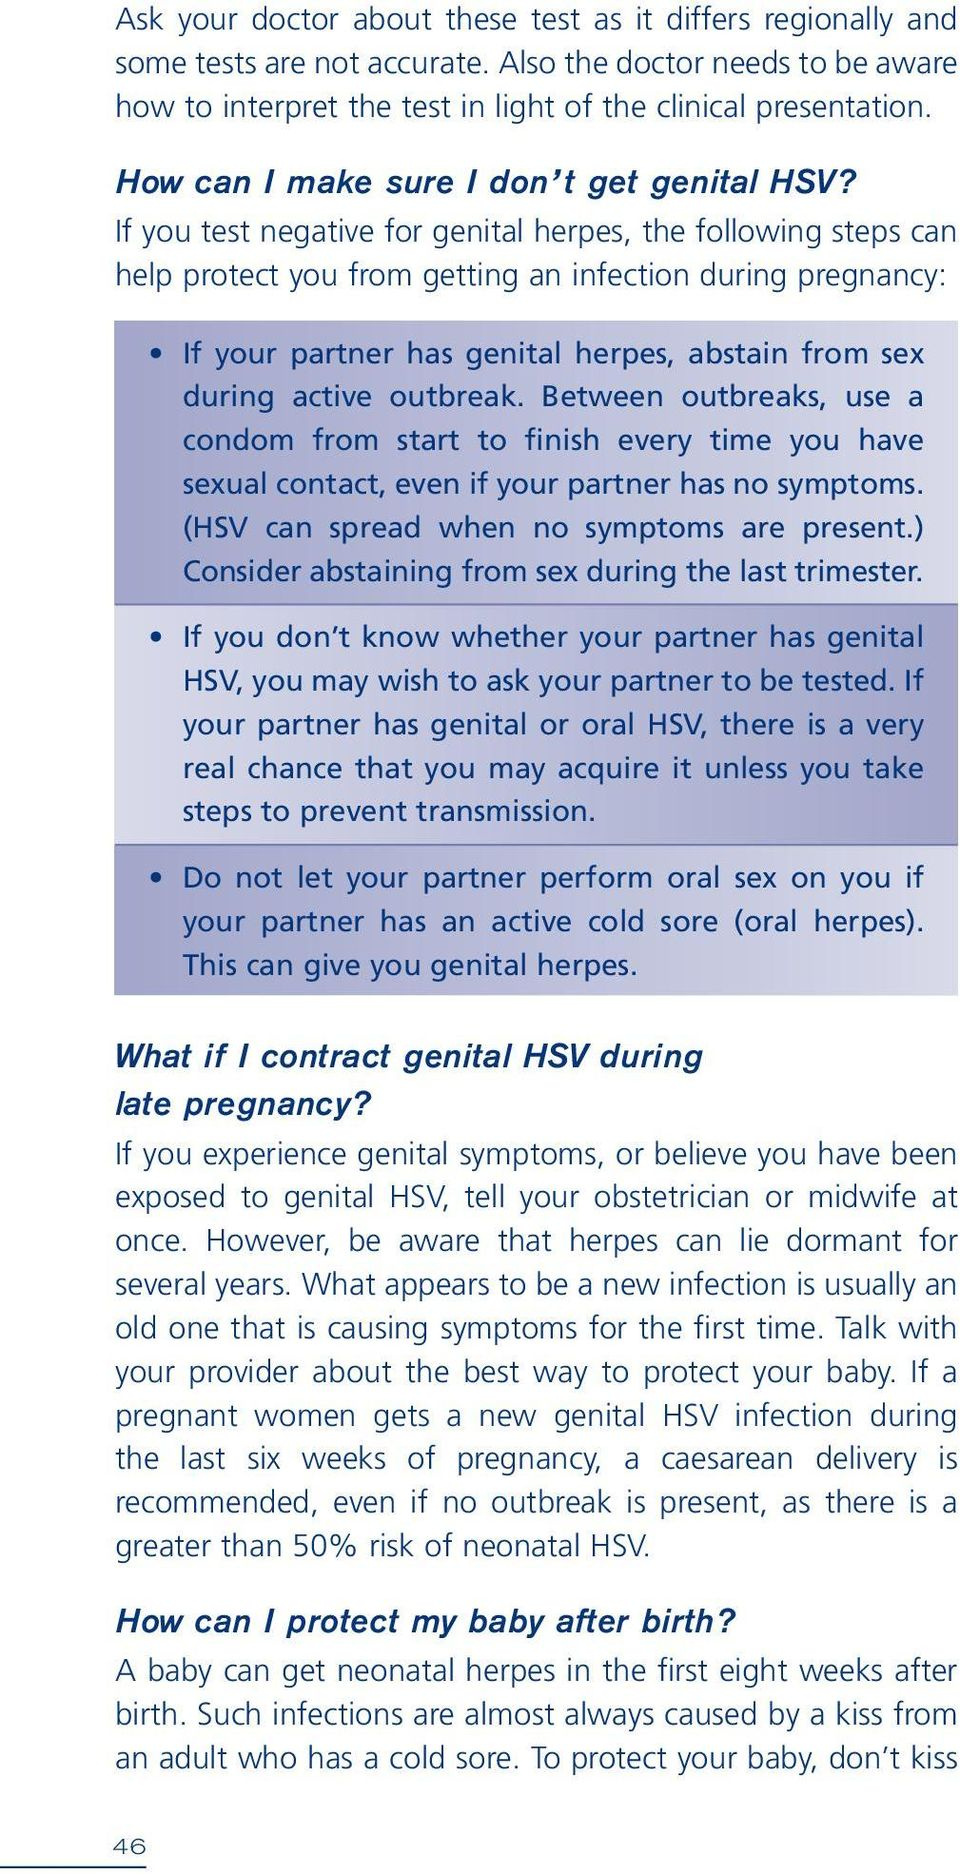 If you test negative for genital herpes, the following steps can help protect you from getting an infection during pregnancy: If your partner has genital herpes, abstain from sex during active